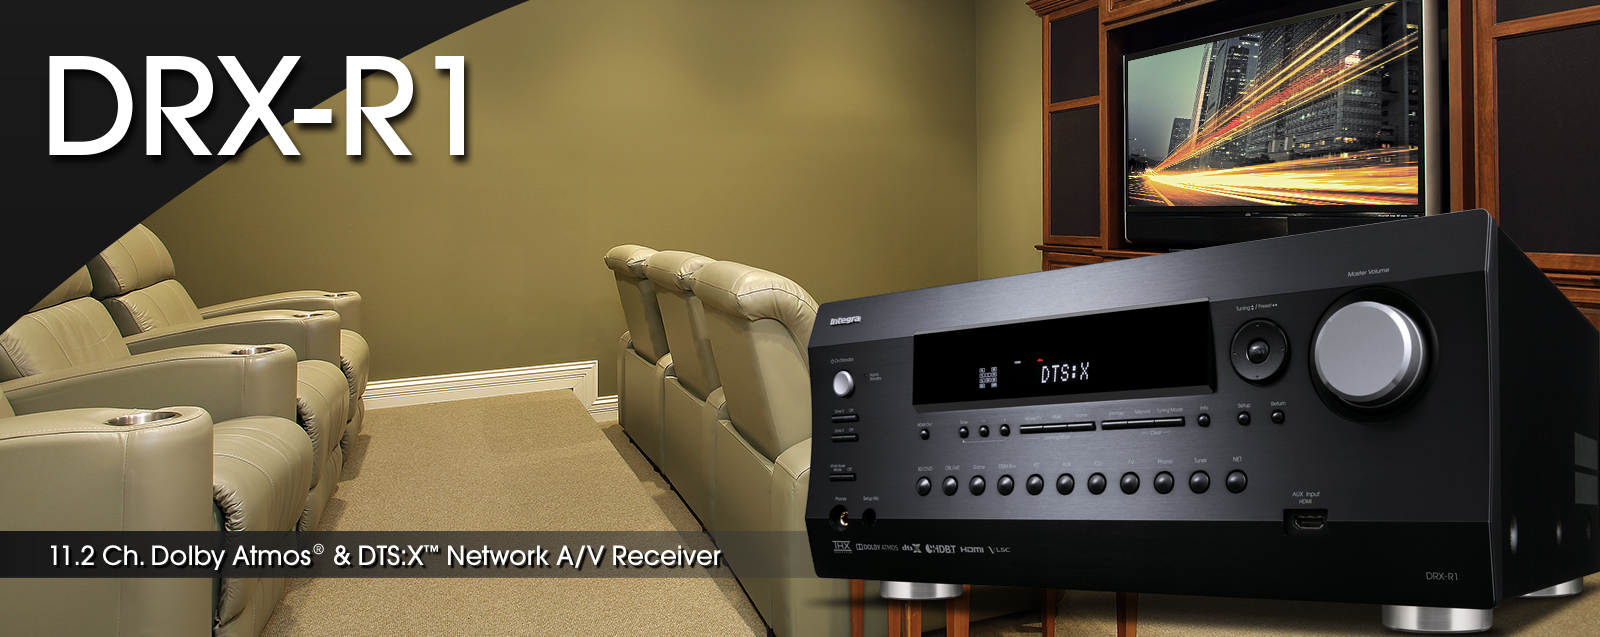 DRX-R1 | INTEGRA HOME THEATER